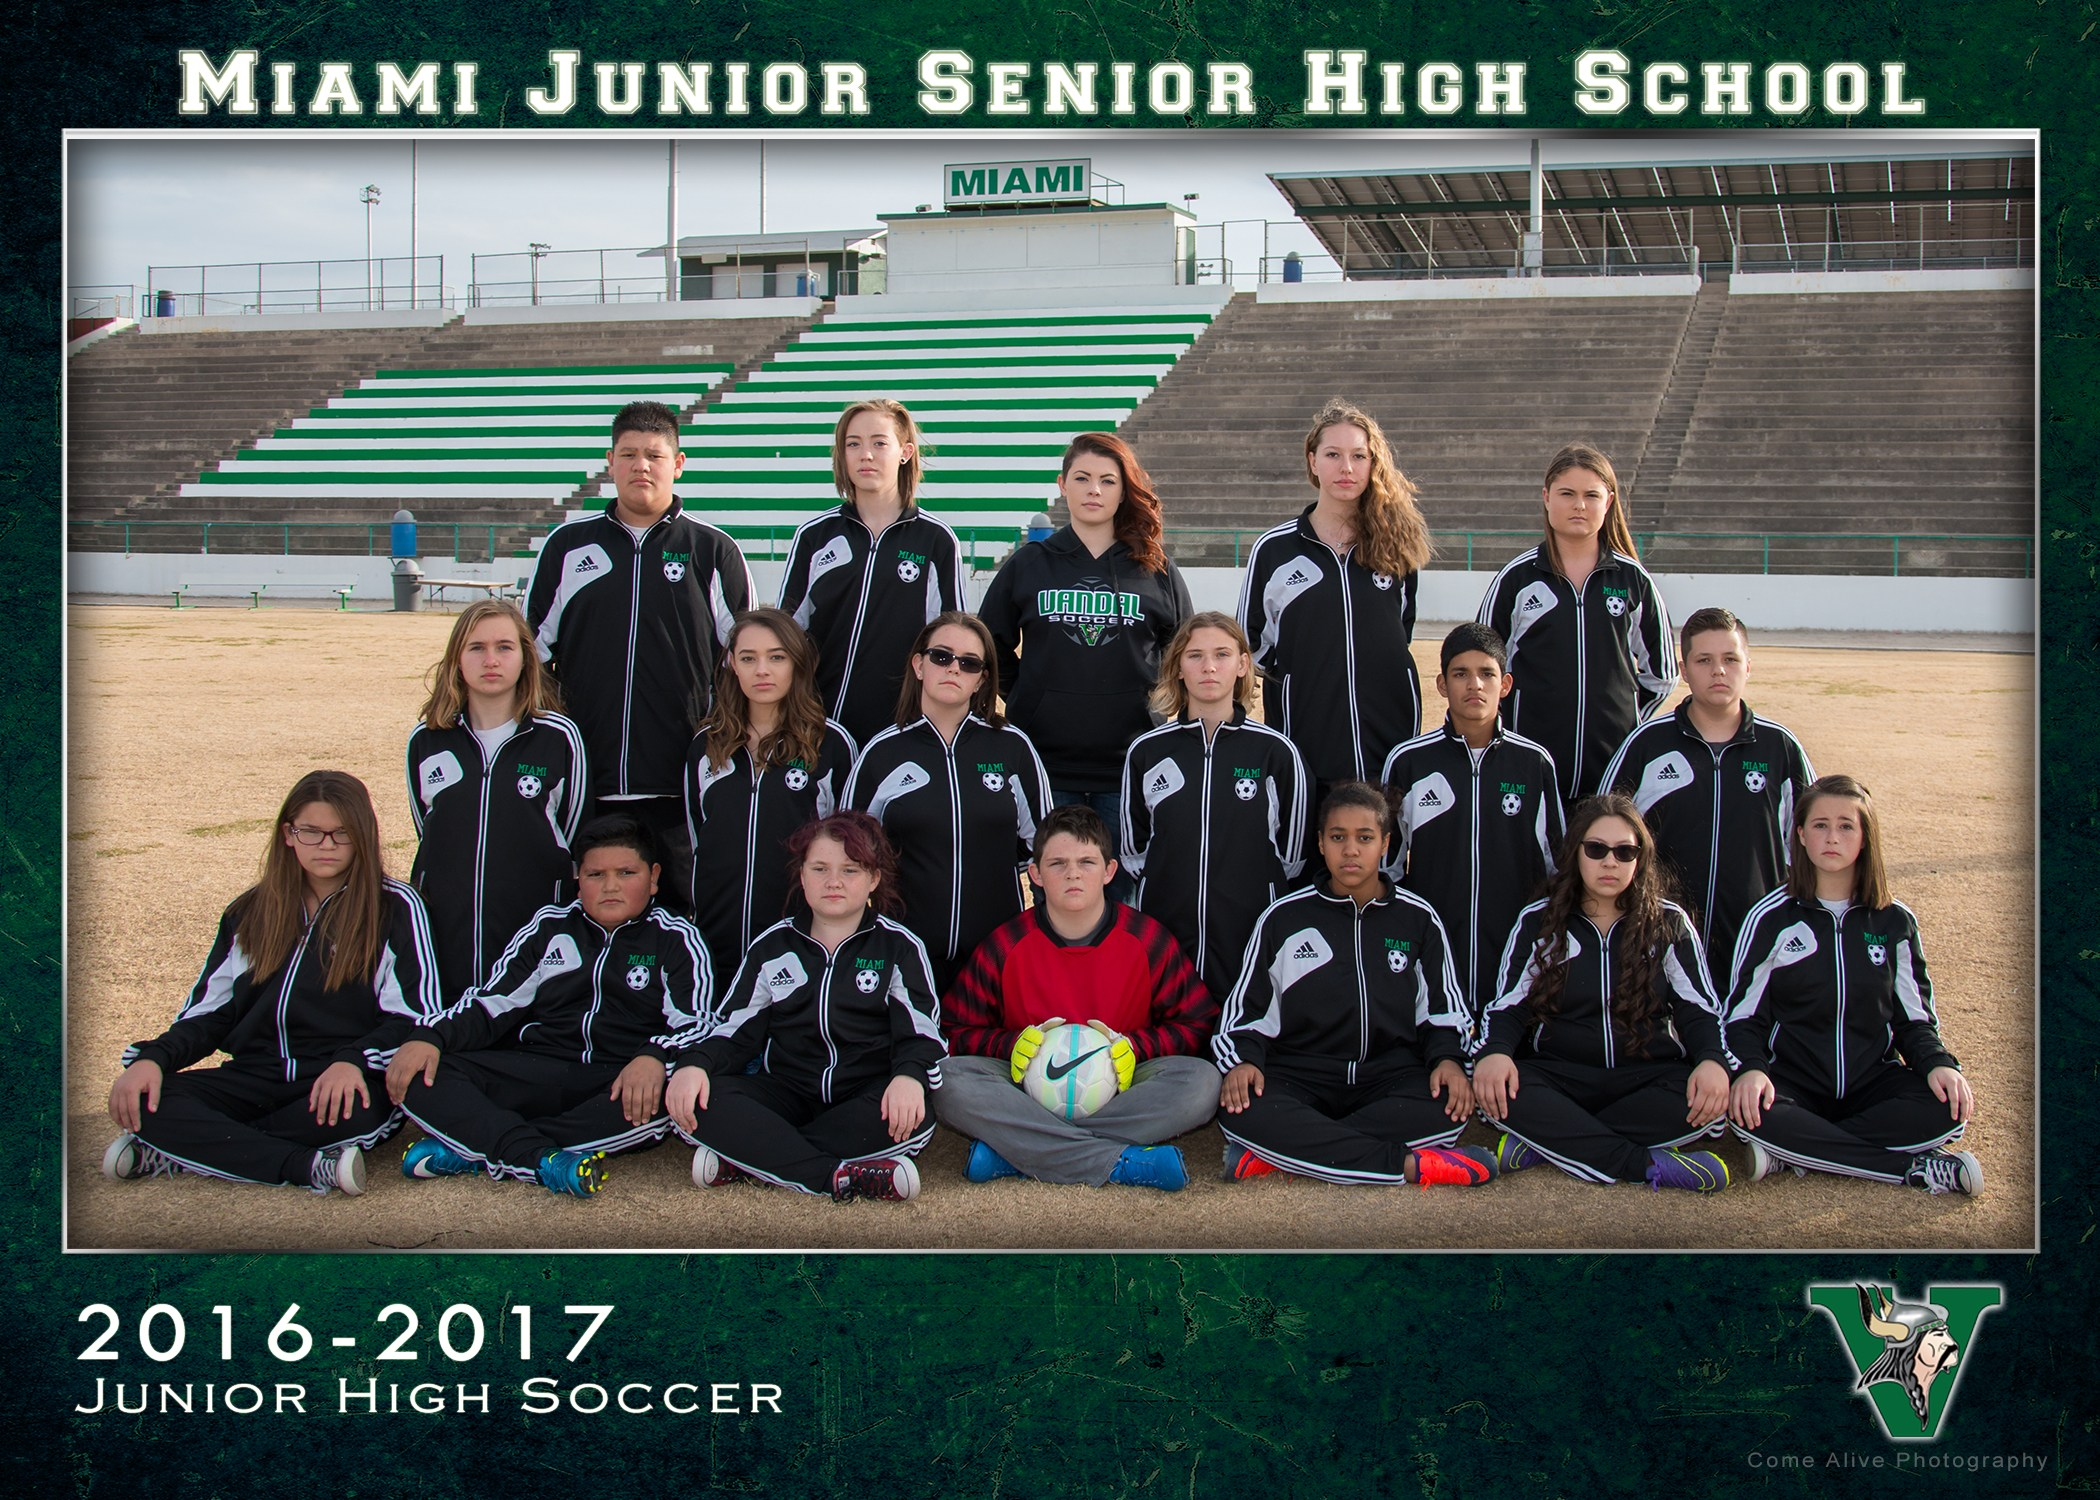 Junior High Soccer